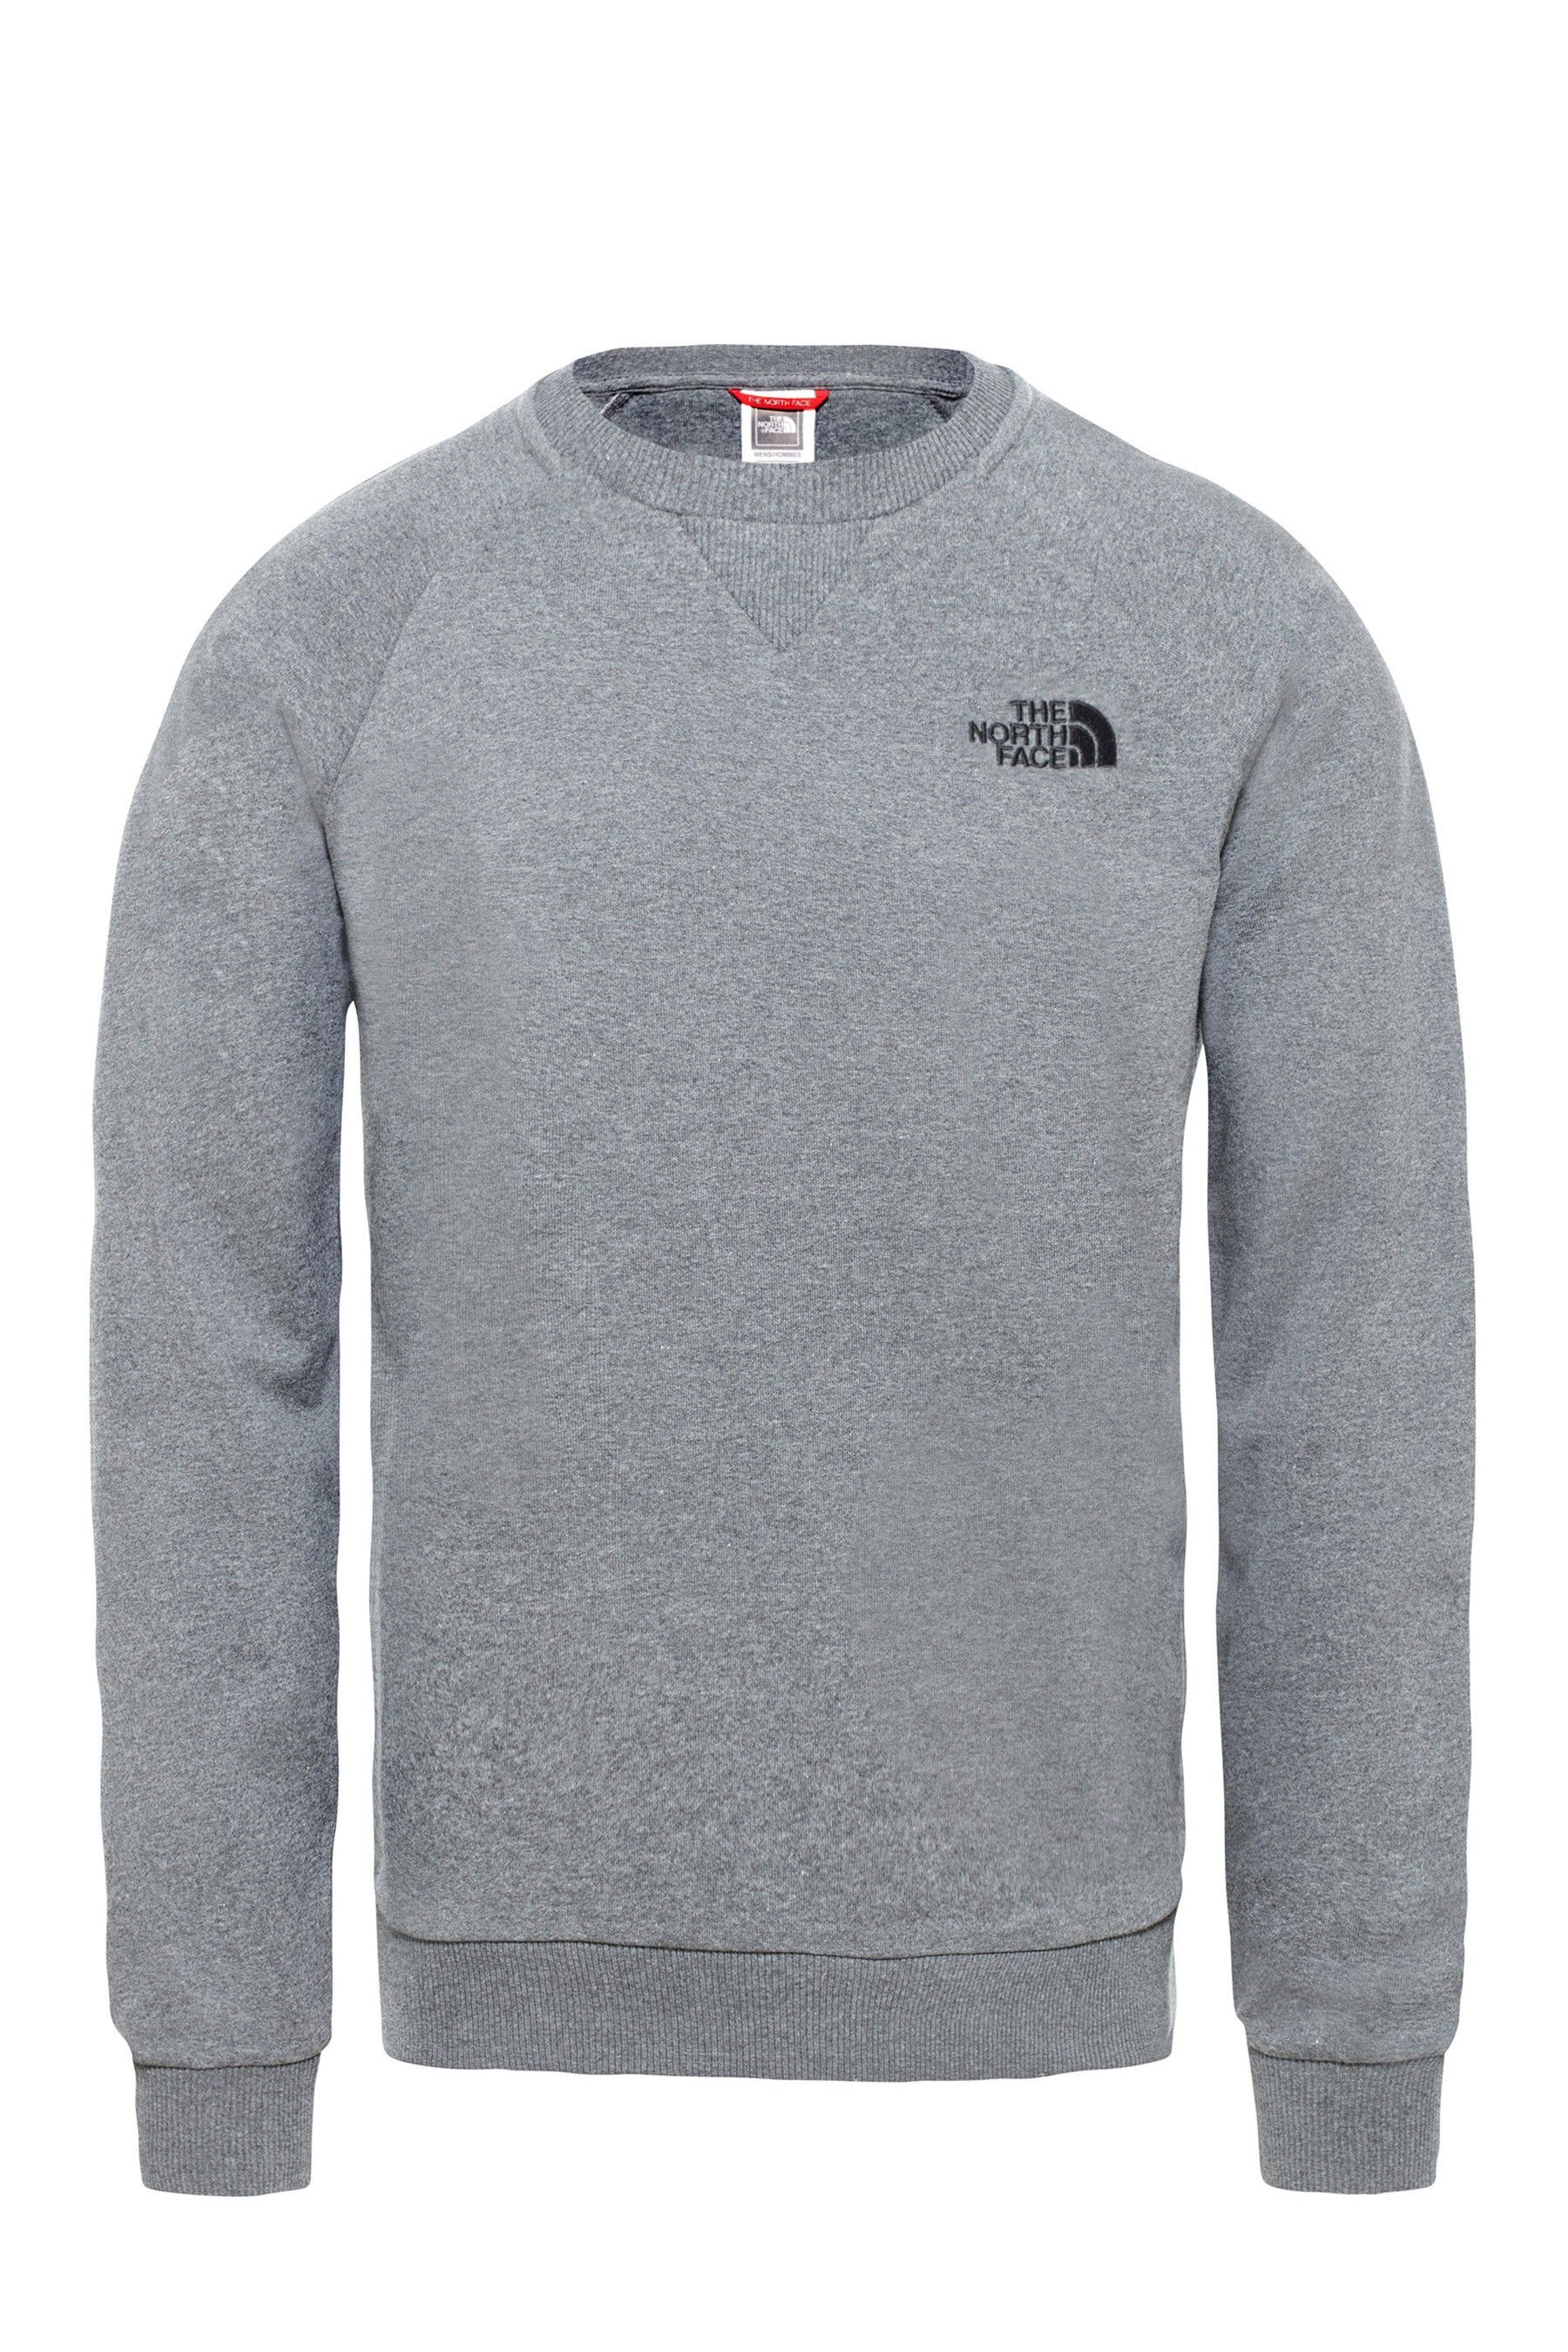 d81db9dbf7fc Mens The North Face Long Sleeve Raglan Tee - Grey in 2019 | Products ...